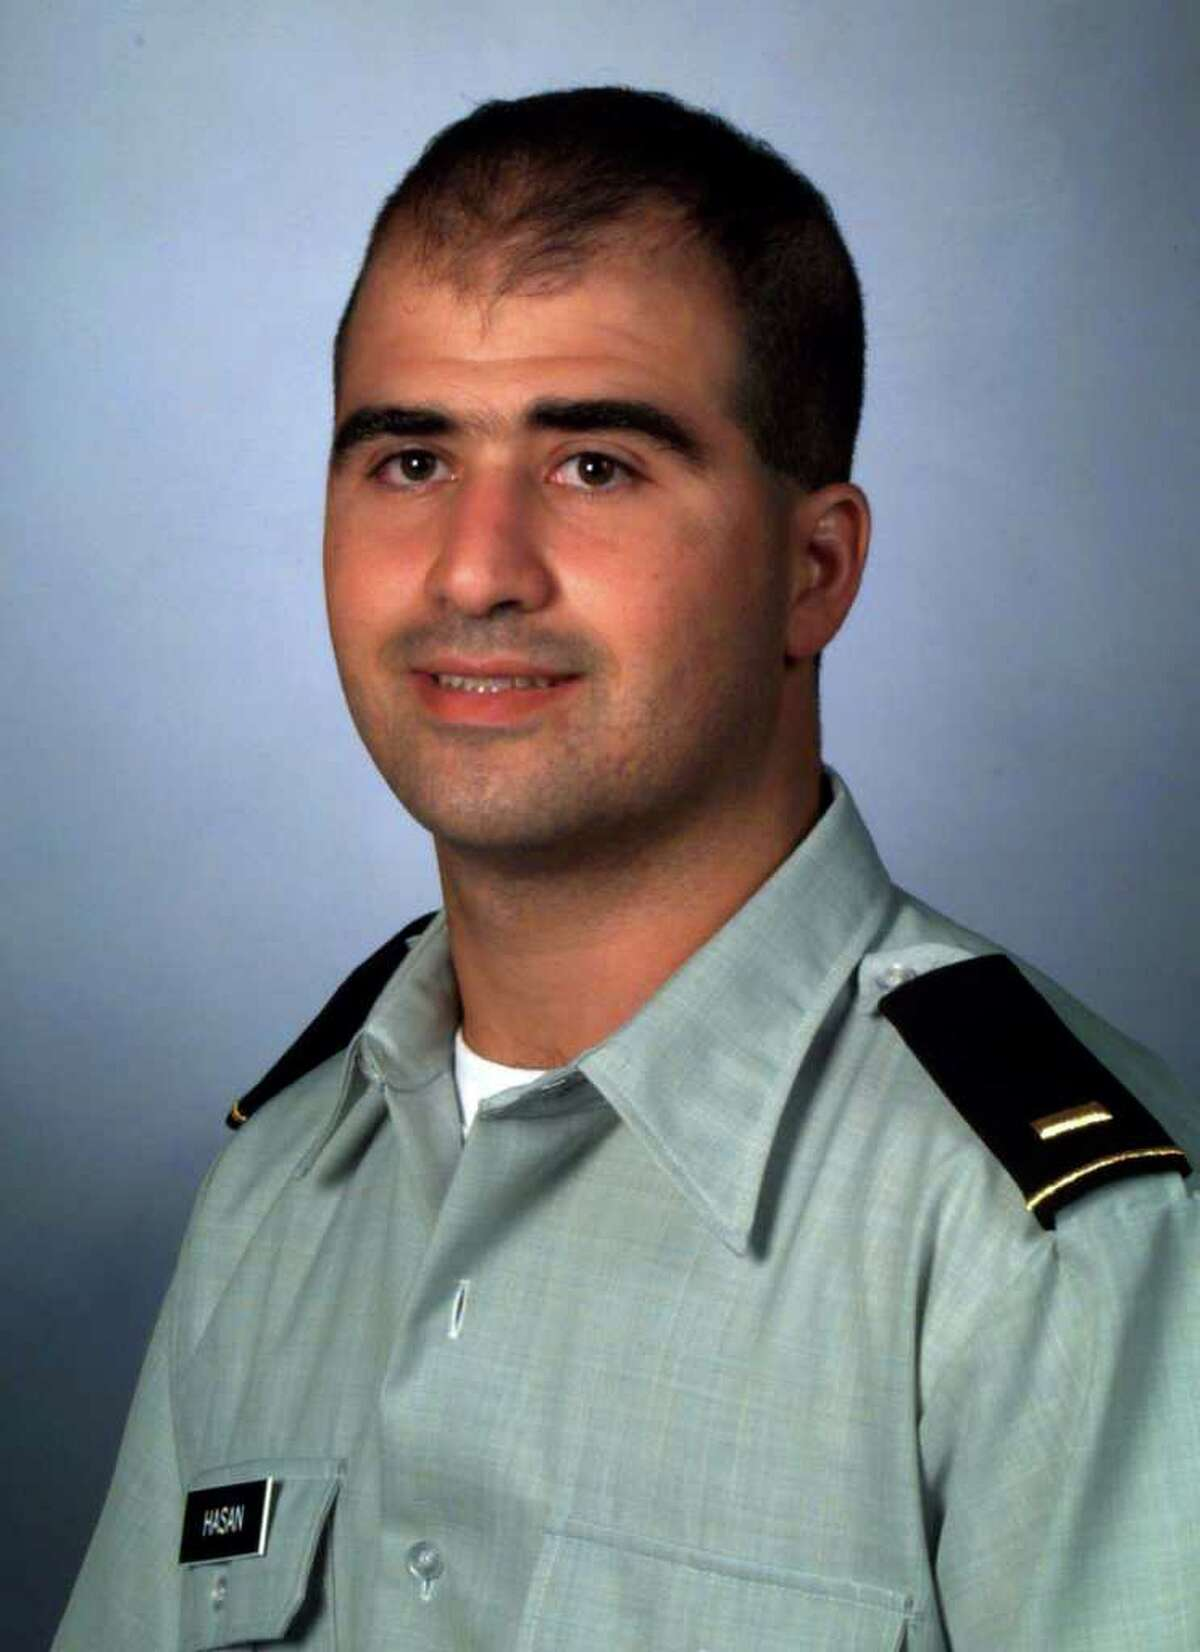 FILE - This 2000 file picture provided by the Uniformed Services University of the Health Sciences (USUHS) shows Nidal Malik Hasan as a medical student at the F. Edward Hebert School of Medicine, USUHS, in Bethesda, Md. According to information gathered during an internal Pentagon review and obtained by The Associated Press, Hasan struggled academically, taking six years to complete the four-year program, but his separate military record was clean enough to get him into Walter Reed for a four-year psychiatry internship and residency.